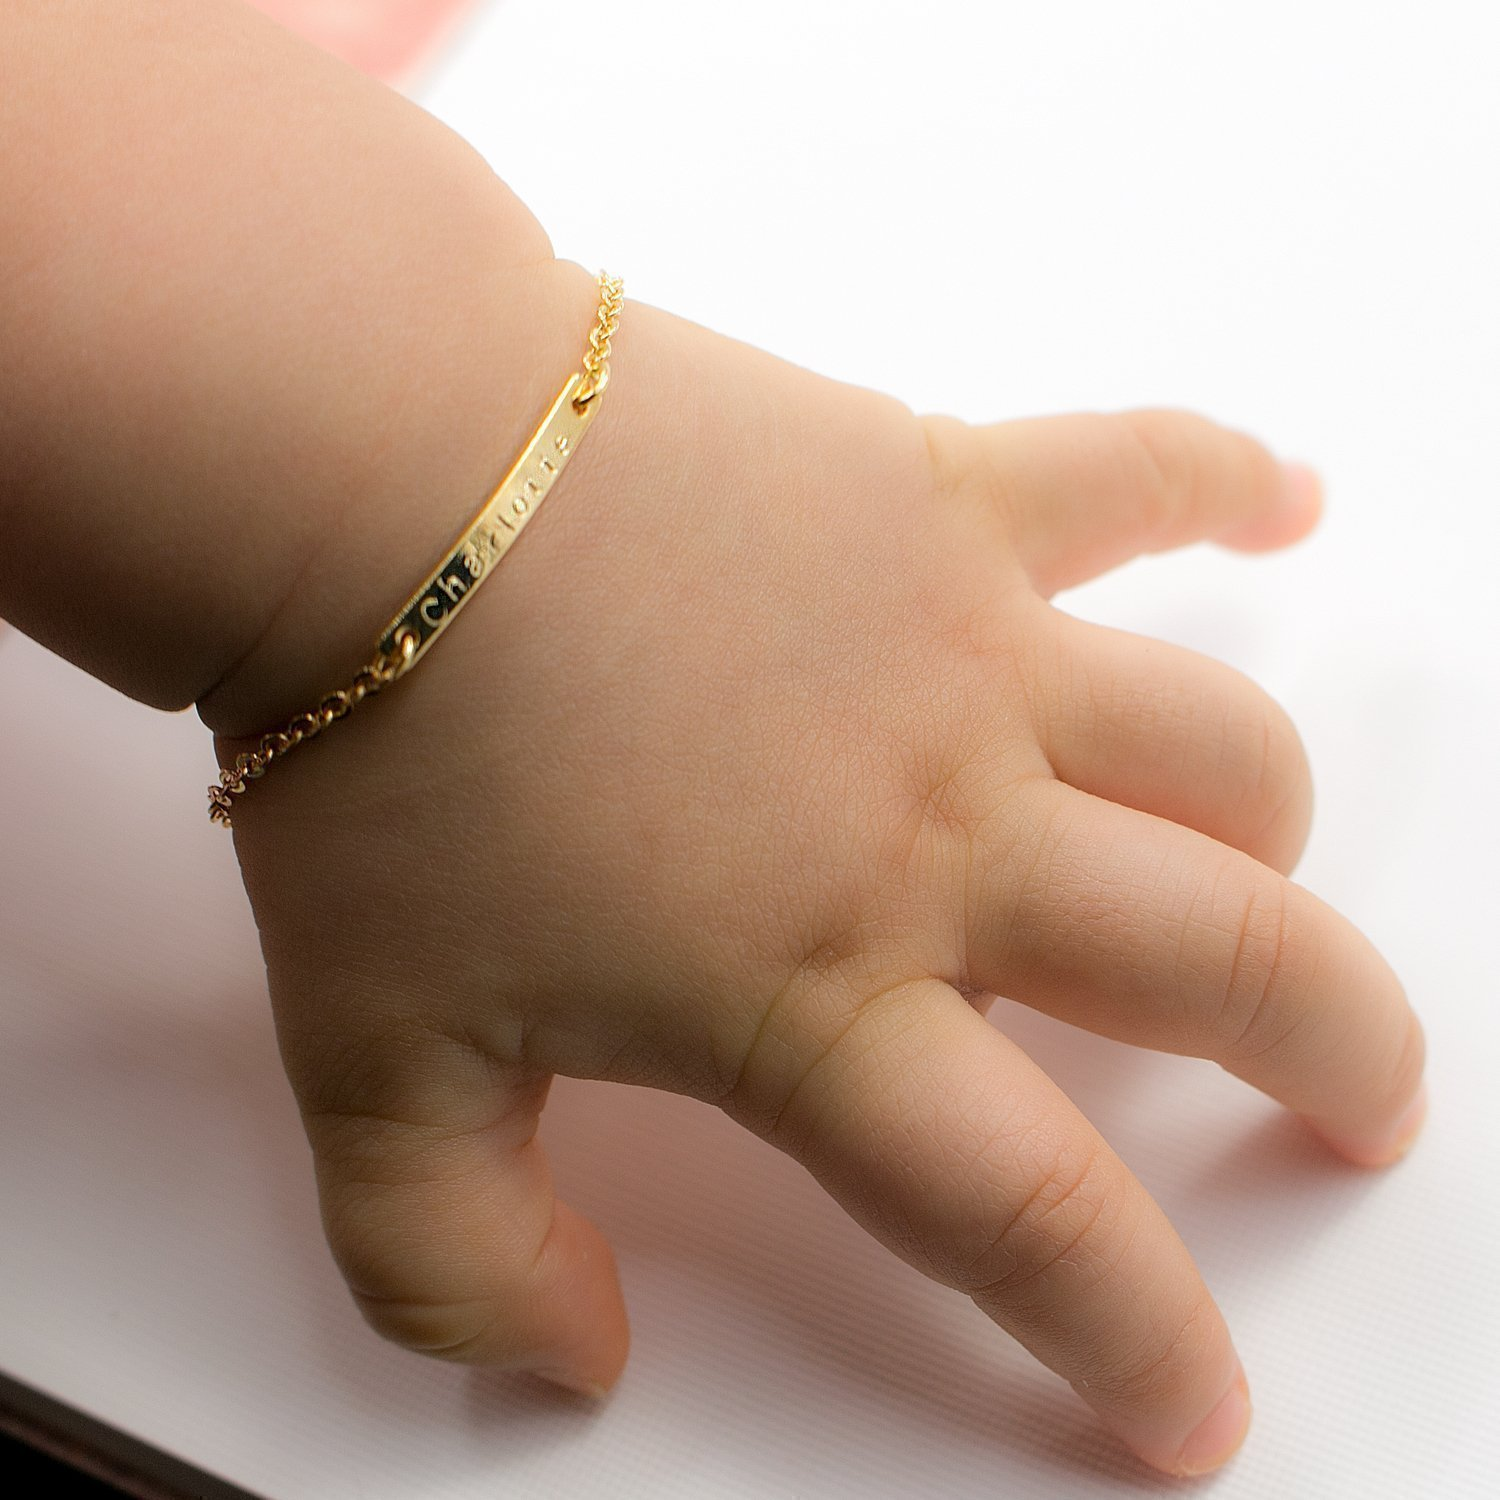 dia com infant on item bangle bangles alibaba yellow group in gold baby from accessories bracelet aliexpress jewelry filled